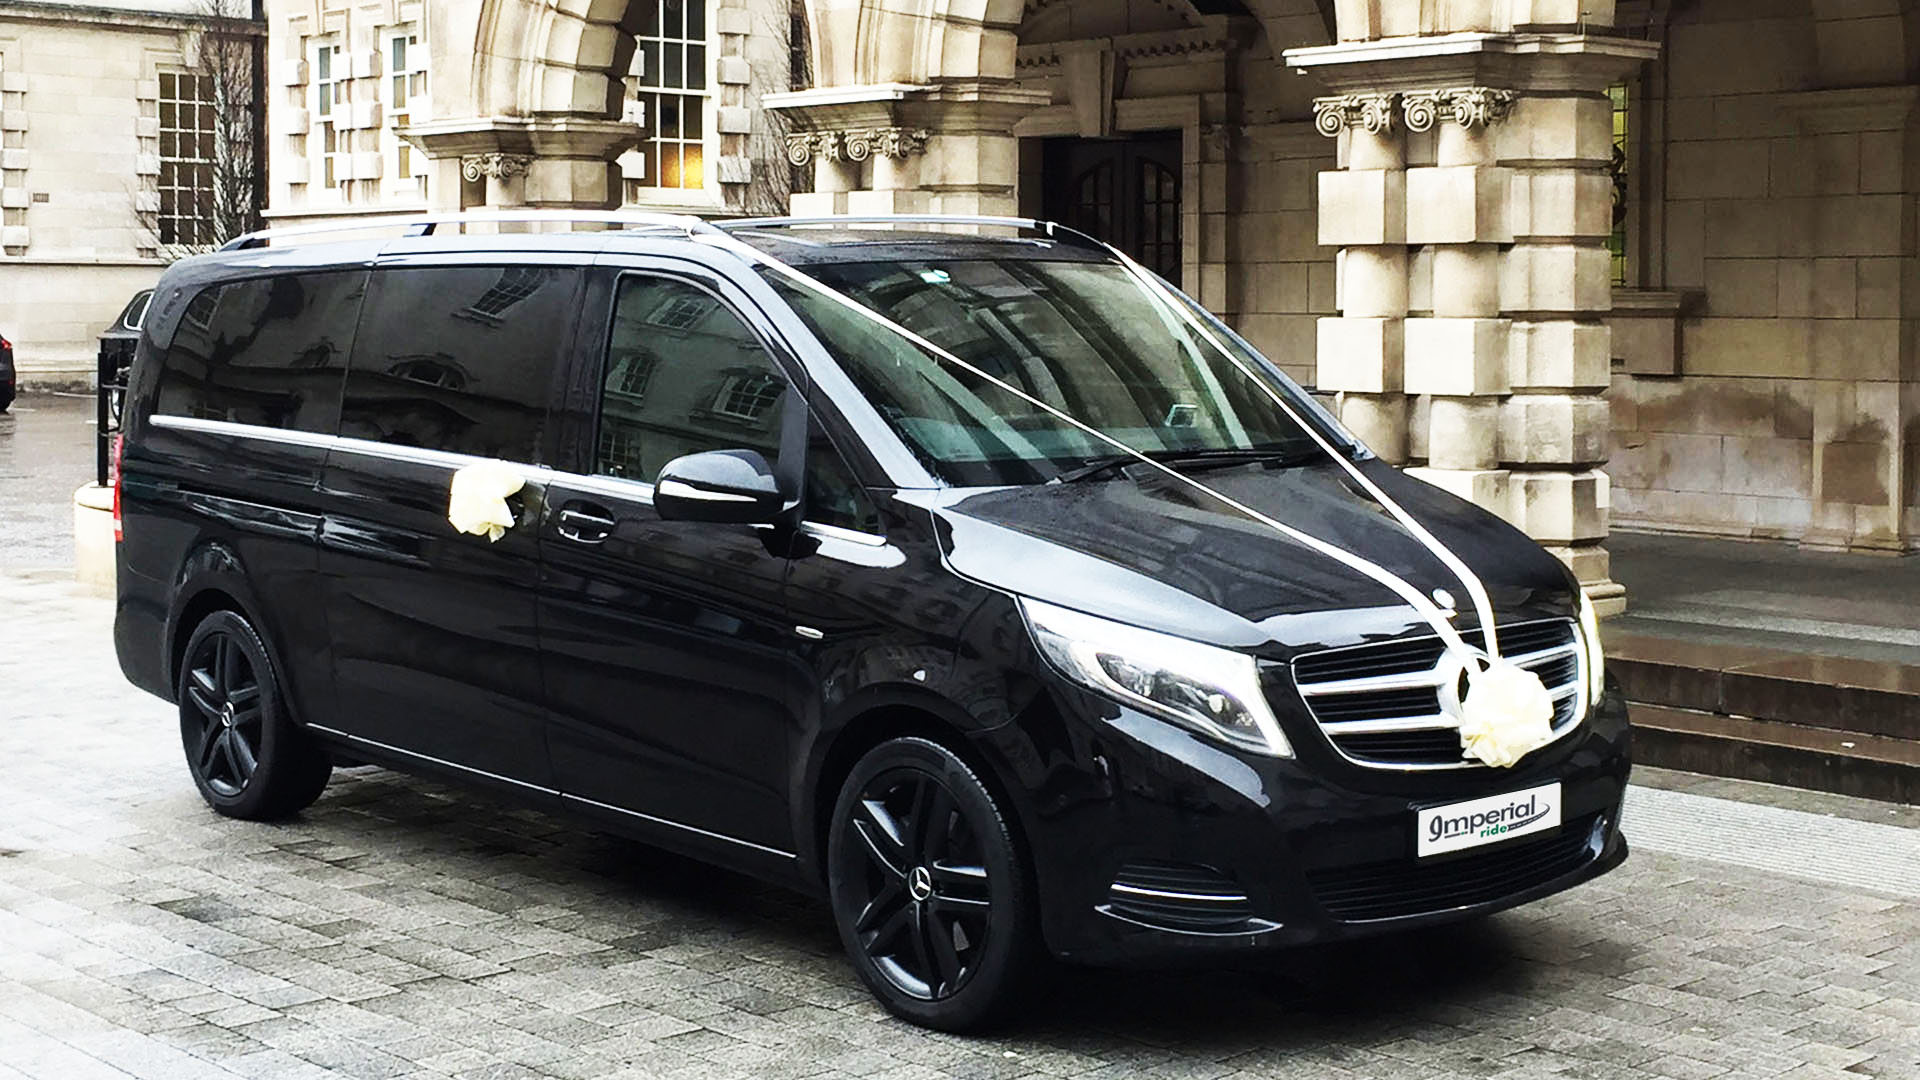 v-class-wedding-hire-in-harrow